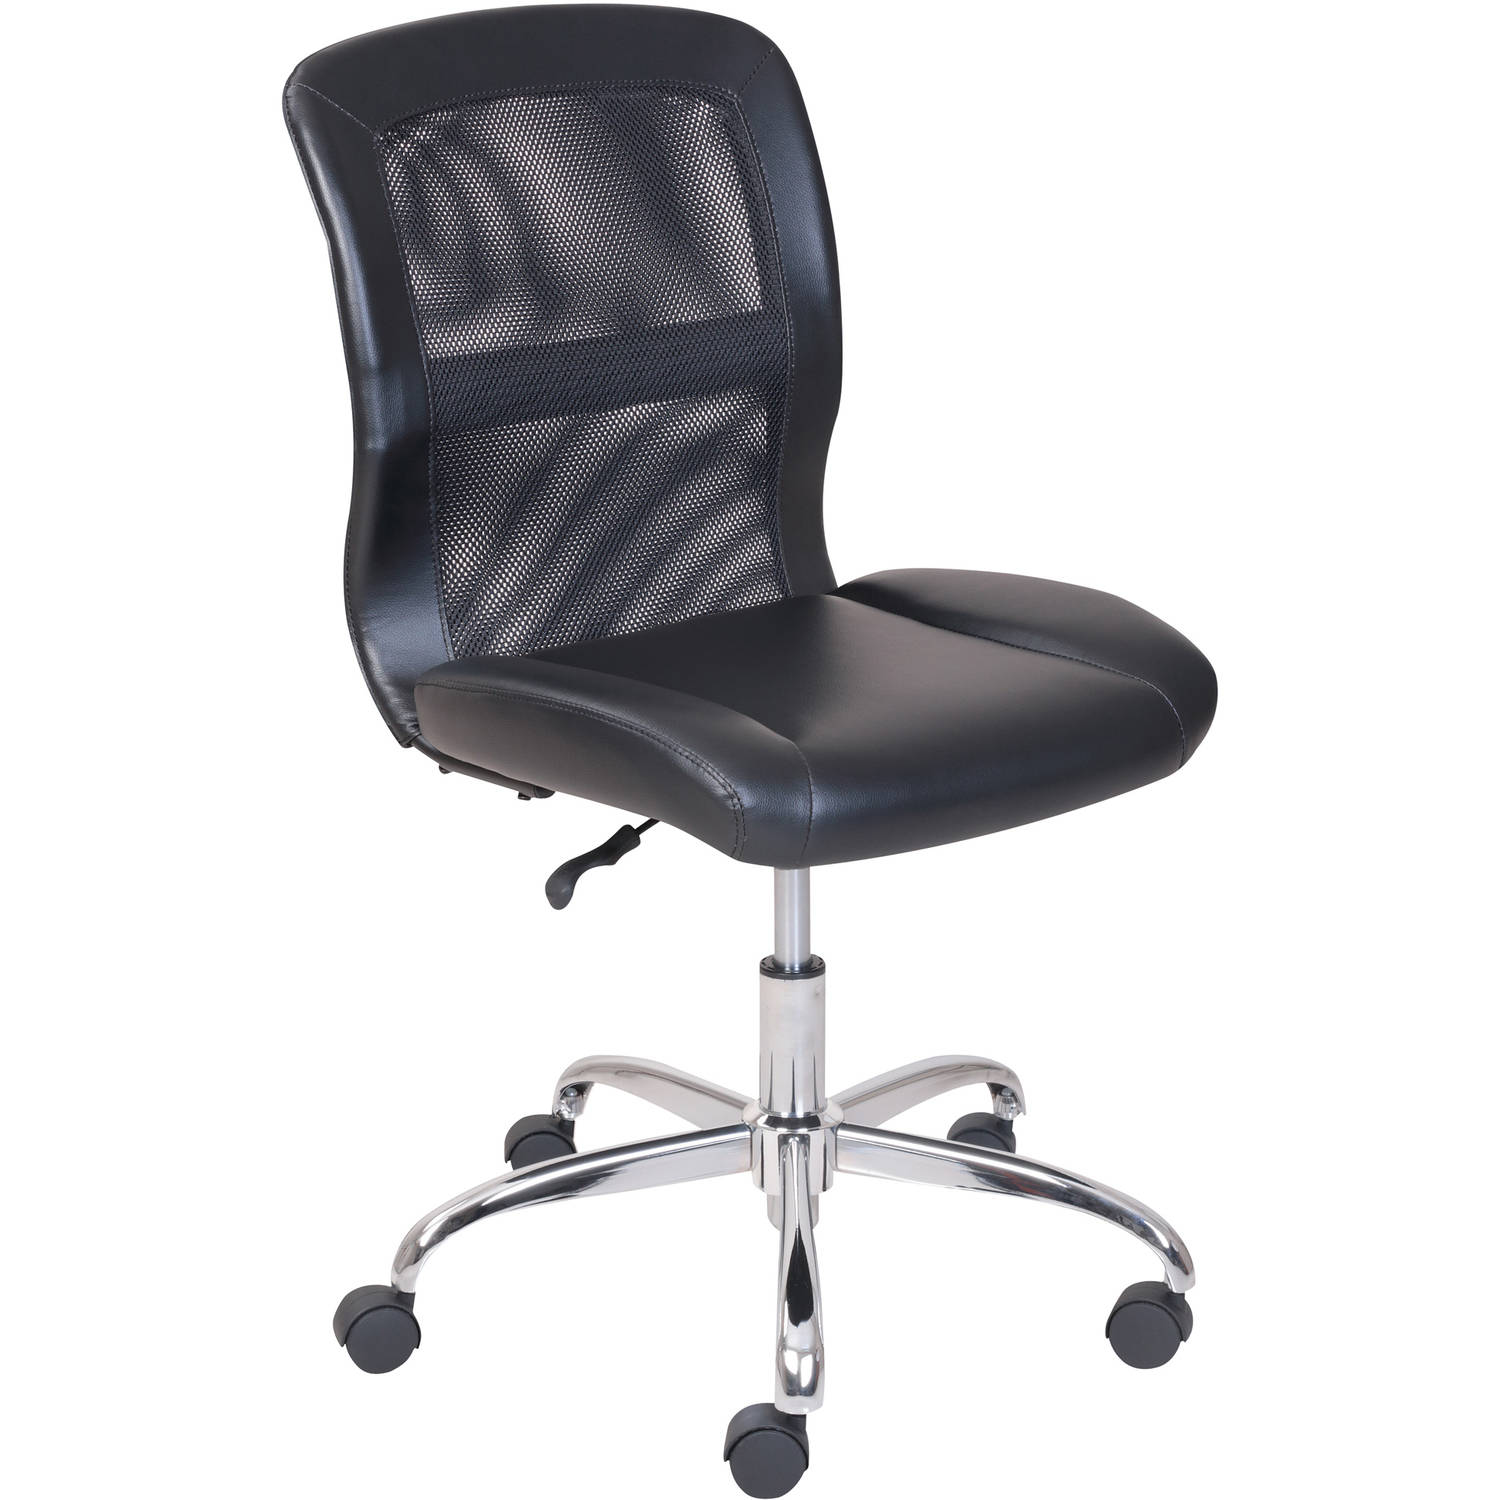 Office Desk Chair Task Computer Swivel Rolling Vinyl and